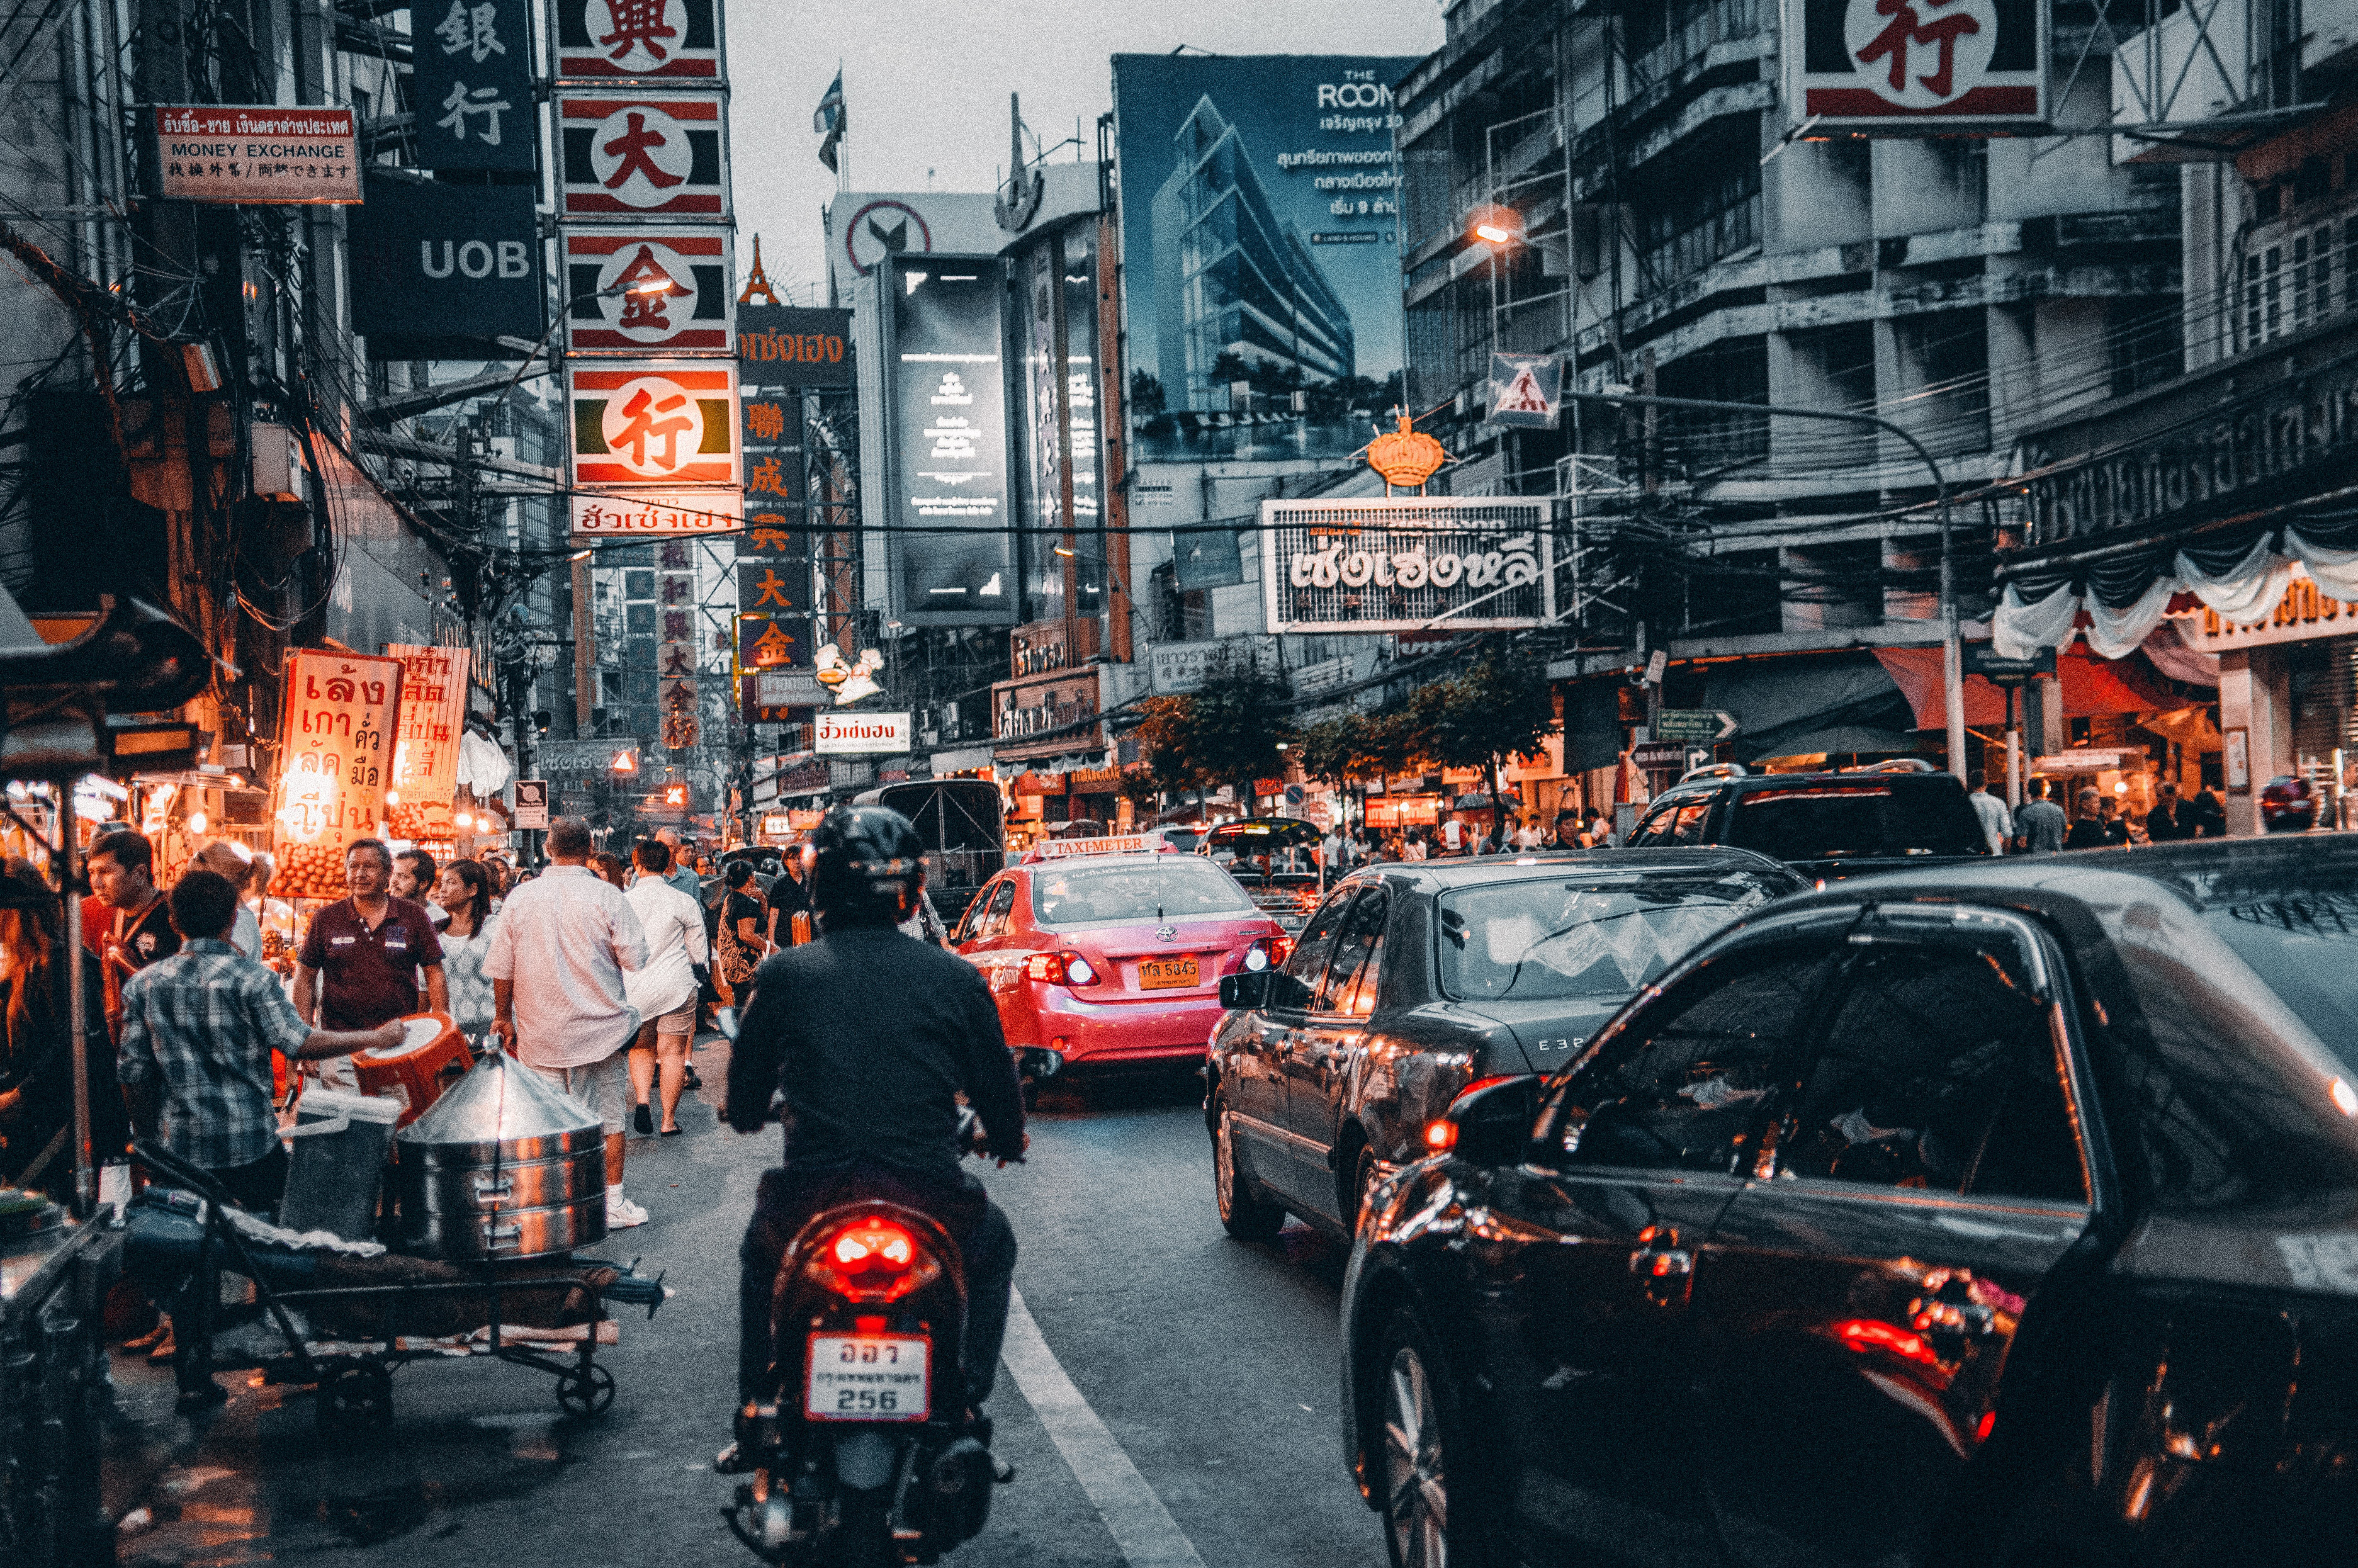 Crowded Street With Cars Passing By, Bangkok, Shopping, Vehicles, Urban, HQ Photo